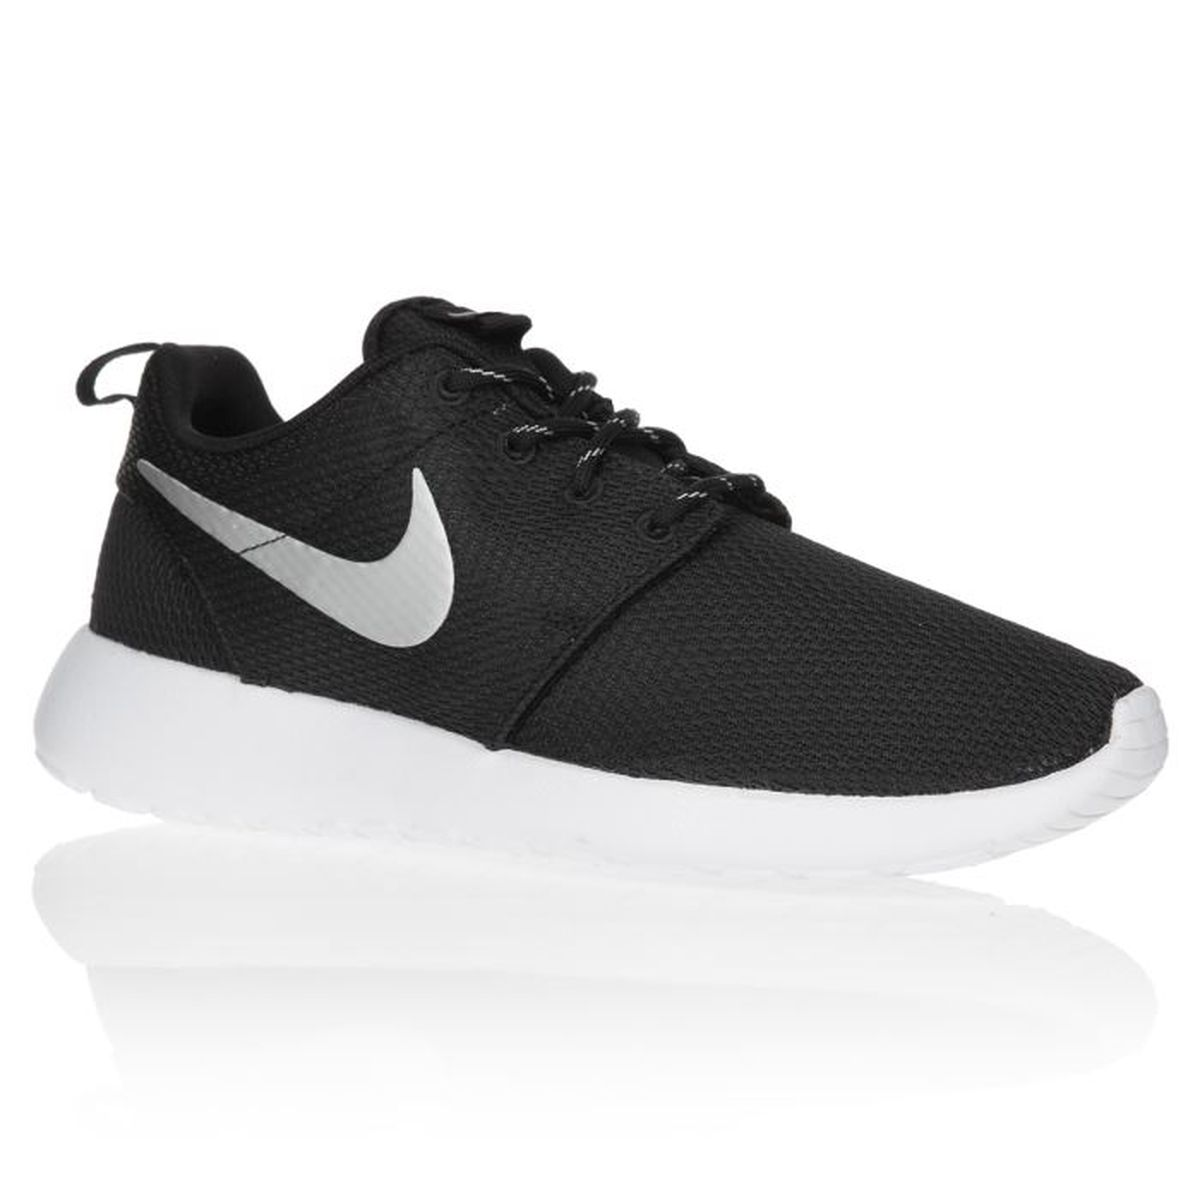 nike baskets rosherun chaussures femme femme noir et blanc. Black Bedroom Furniture Sets. Home Design Ideas